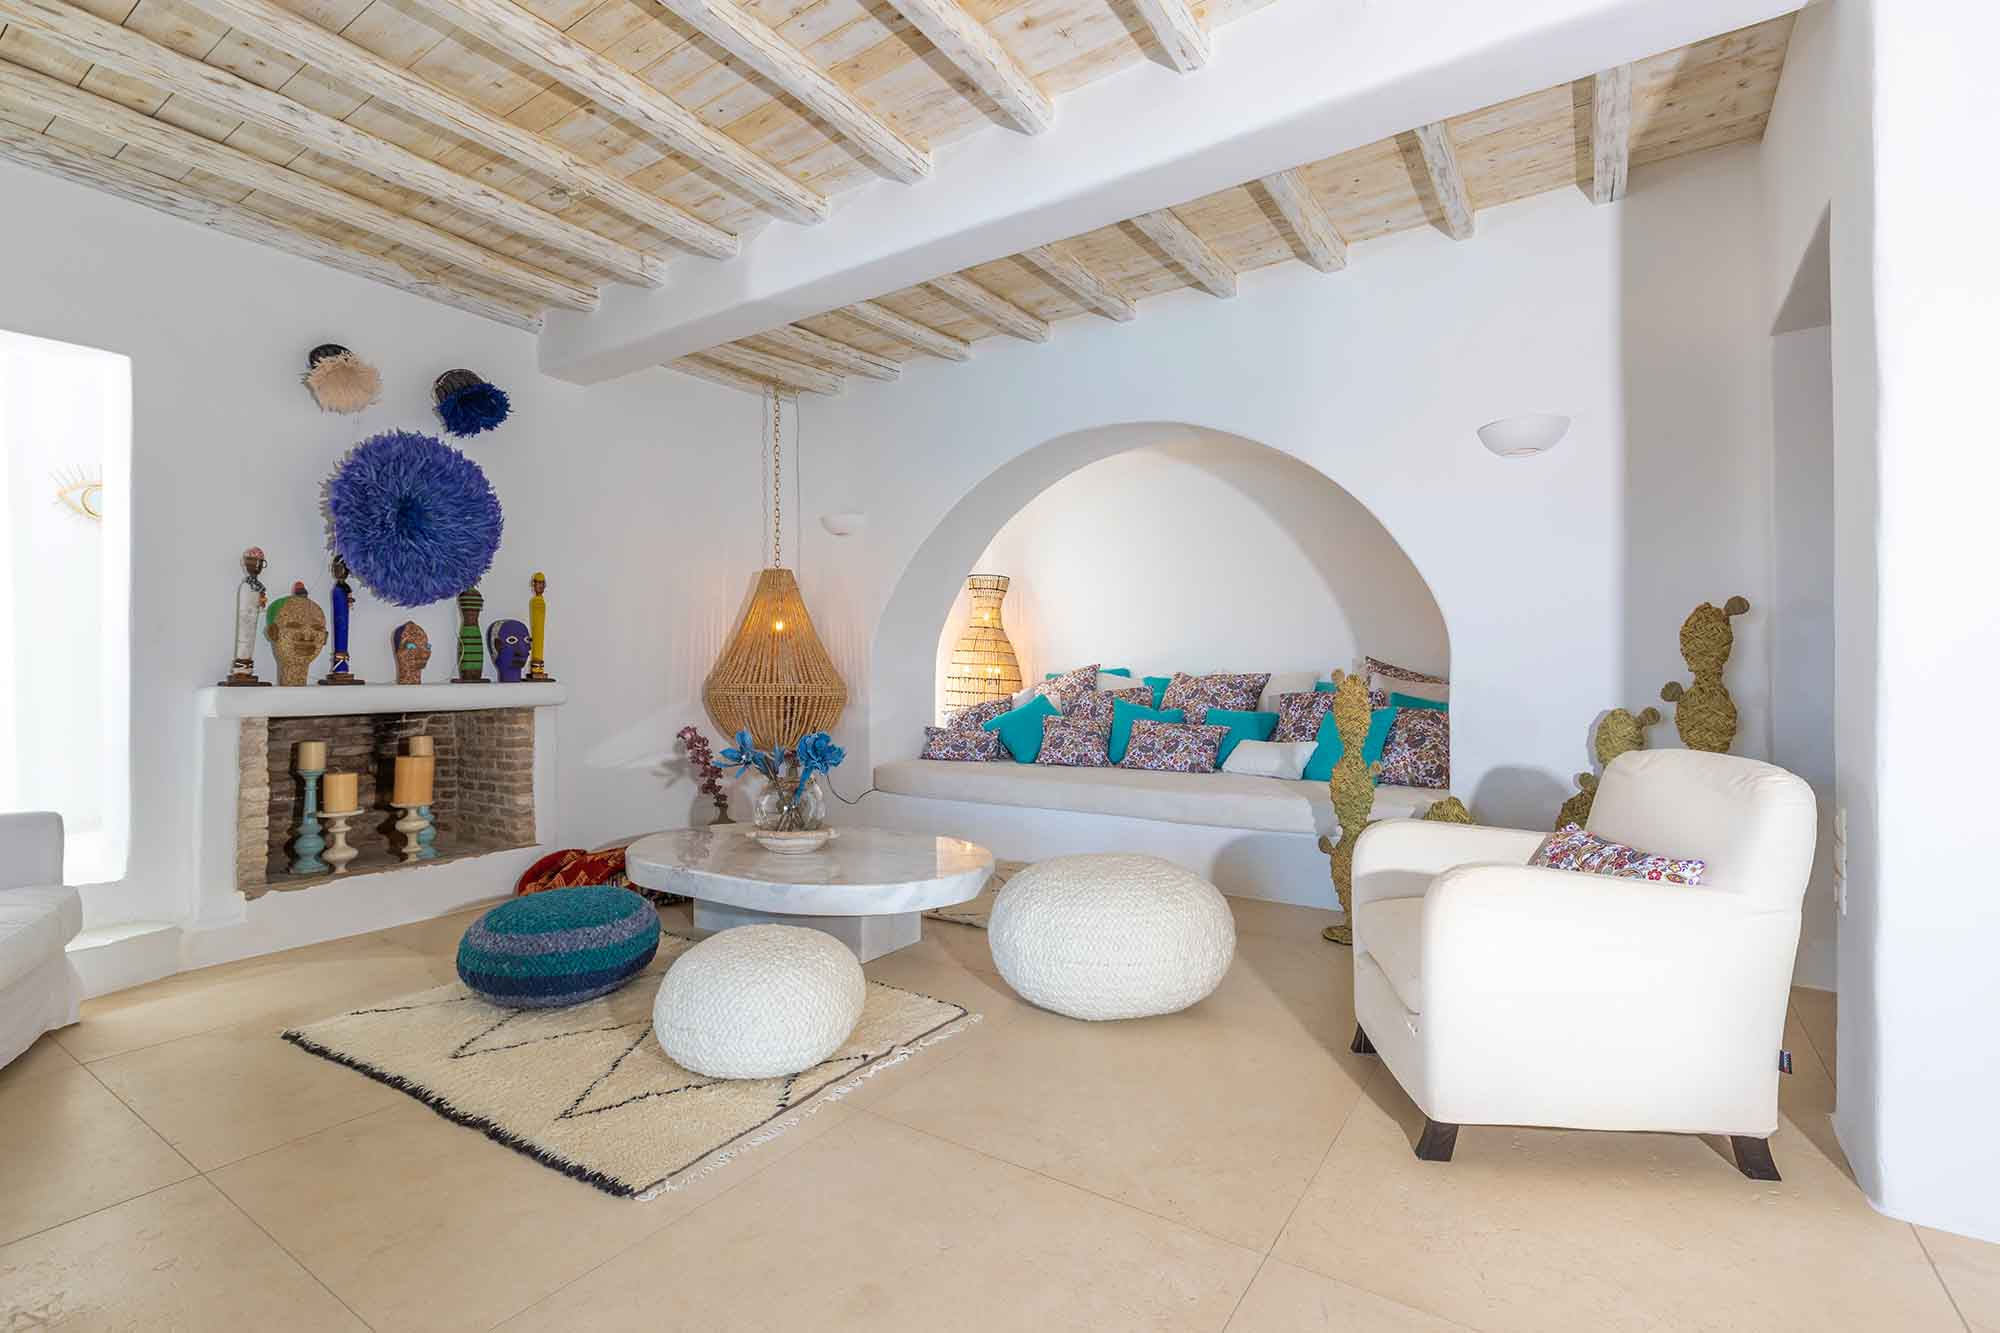 RENT A LUXURIOUS VILLA BY THE SEA IN MYKONOS - VILLA KARKOS - living room